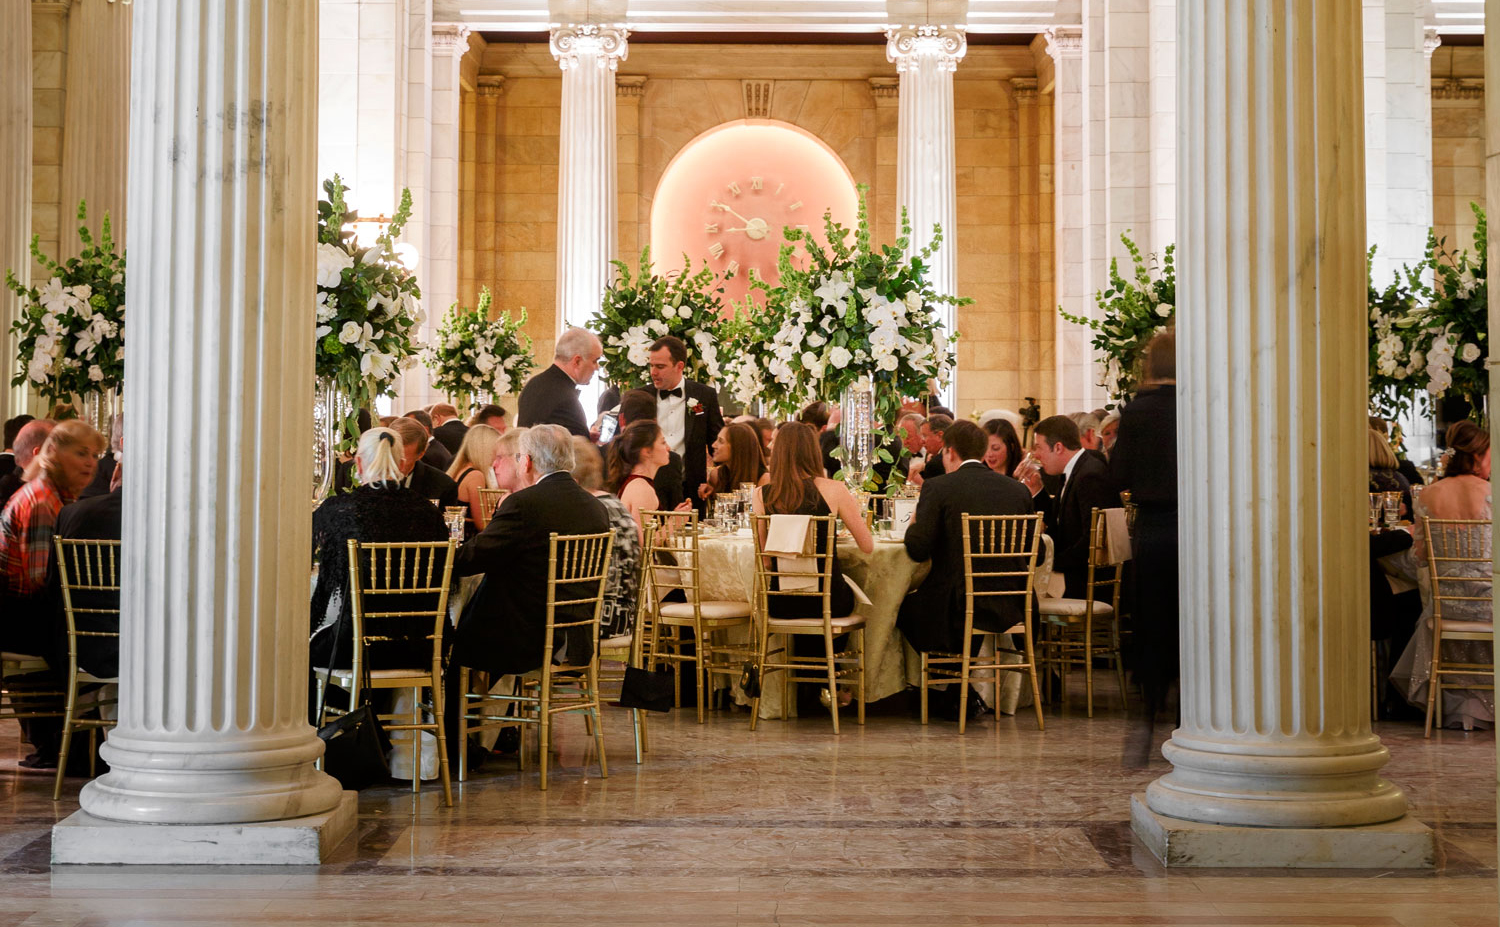 formal wedding guests seating at statehouse wedding reception with columns